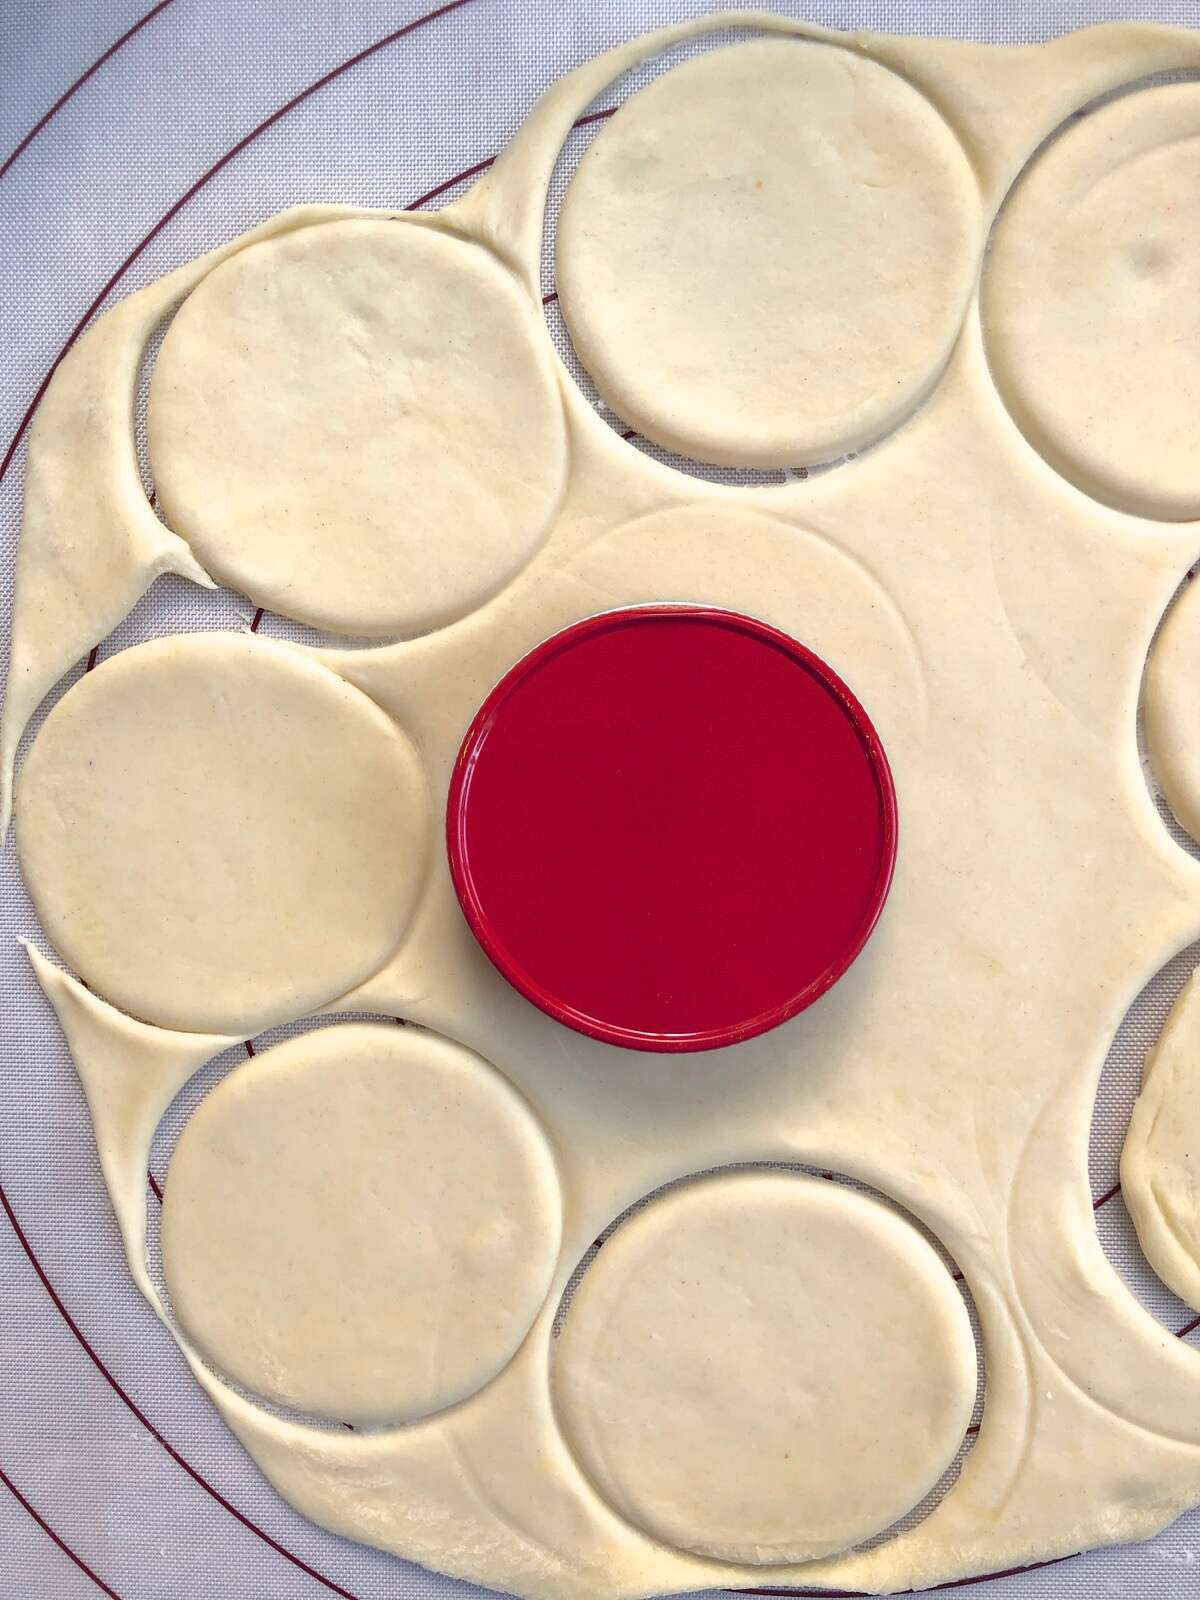 Pierogi dough rolled into a circle, and smaller circles being cut from the dough with a jar lid.